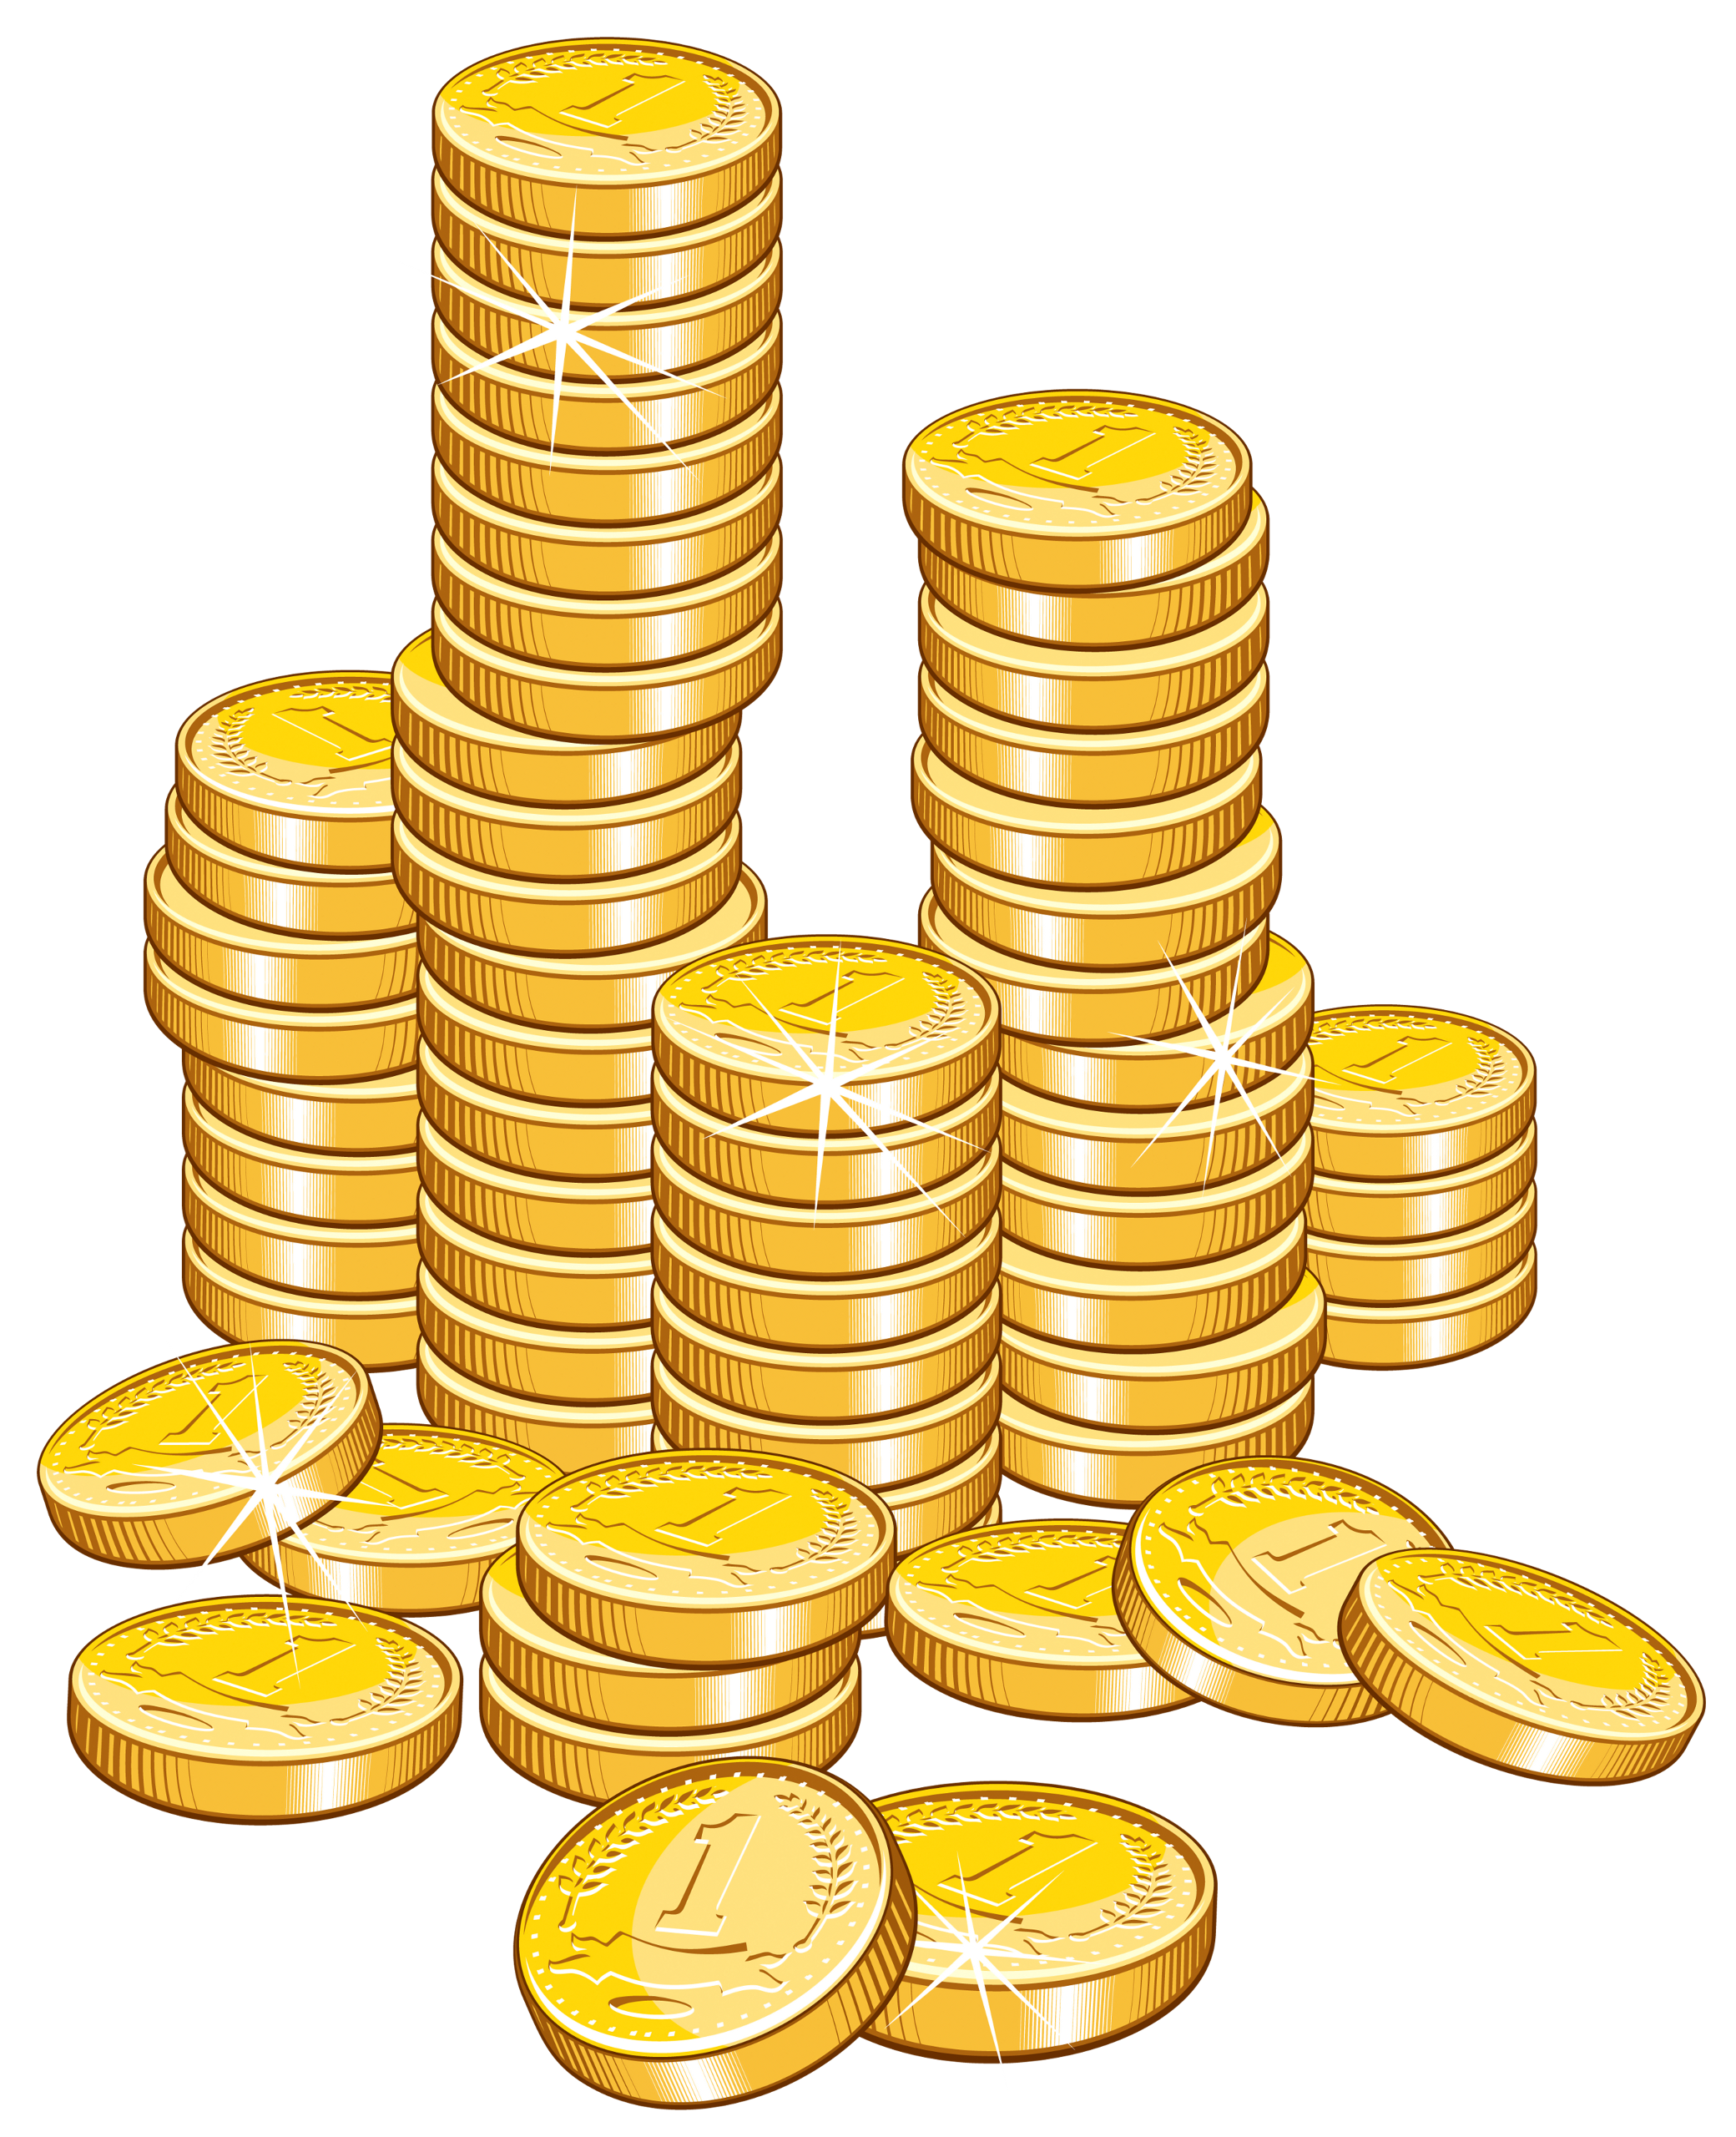 Gold Coins Clipart at GetDrawings.com.